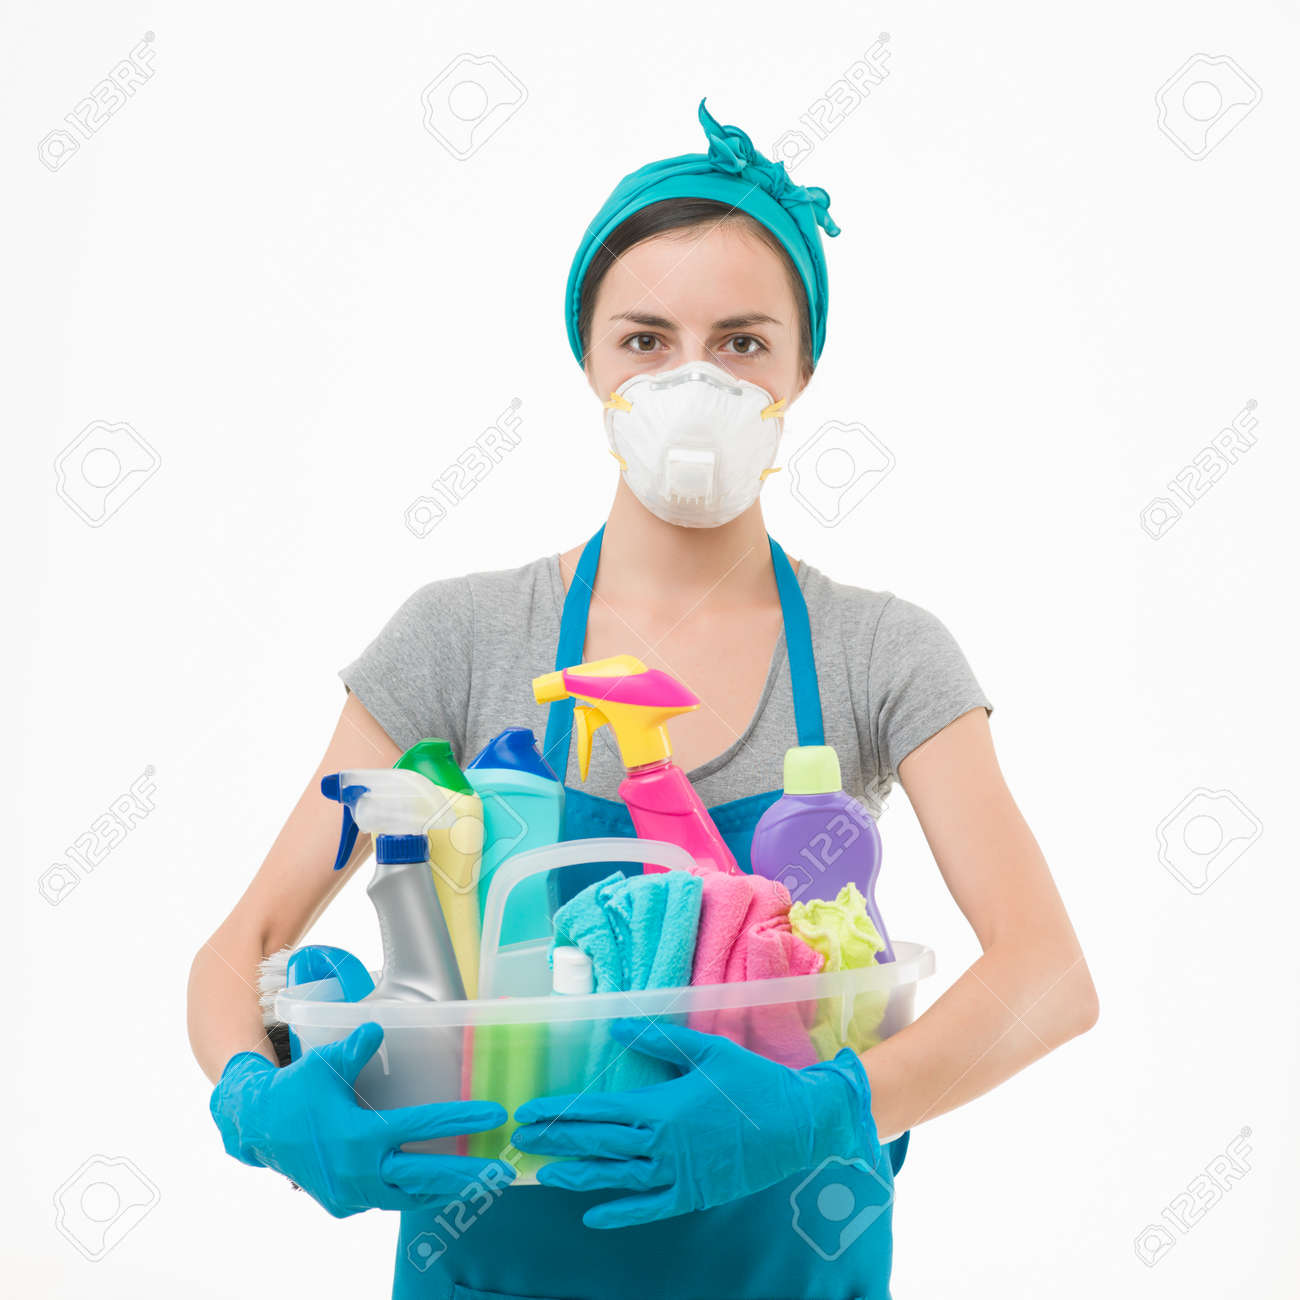 young housewife wearing protection mask, holding cleaning supplies against white background - 36919998